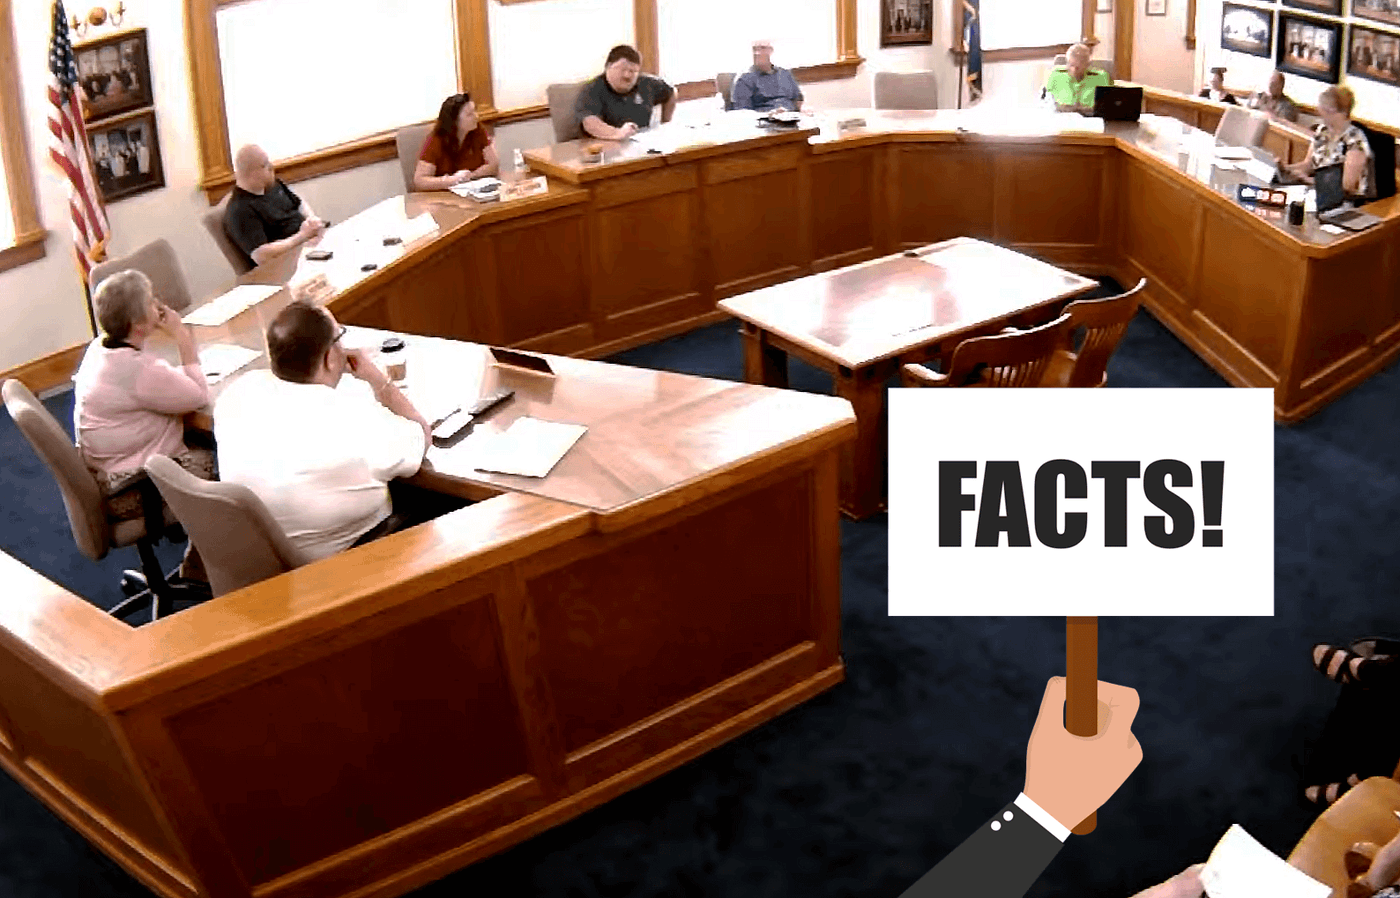 The facts about Shiawassee County's hazard pay scandal